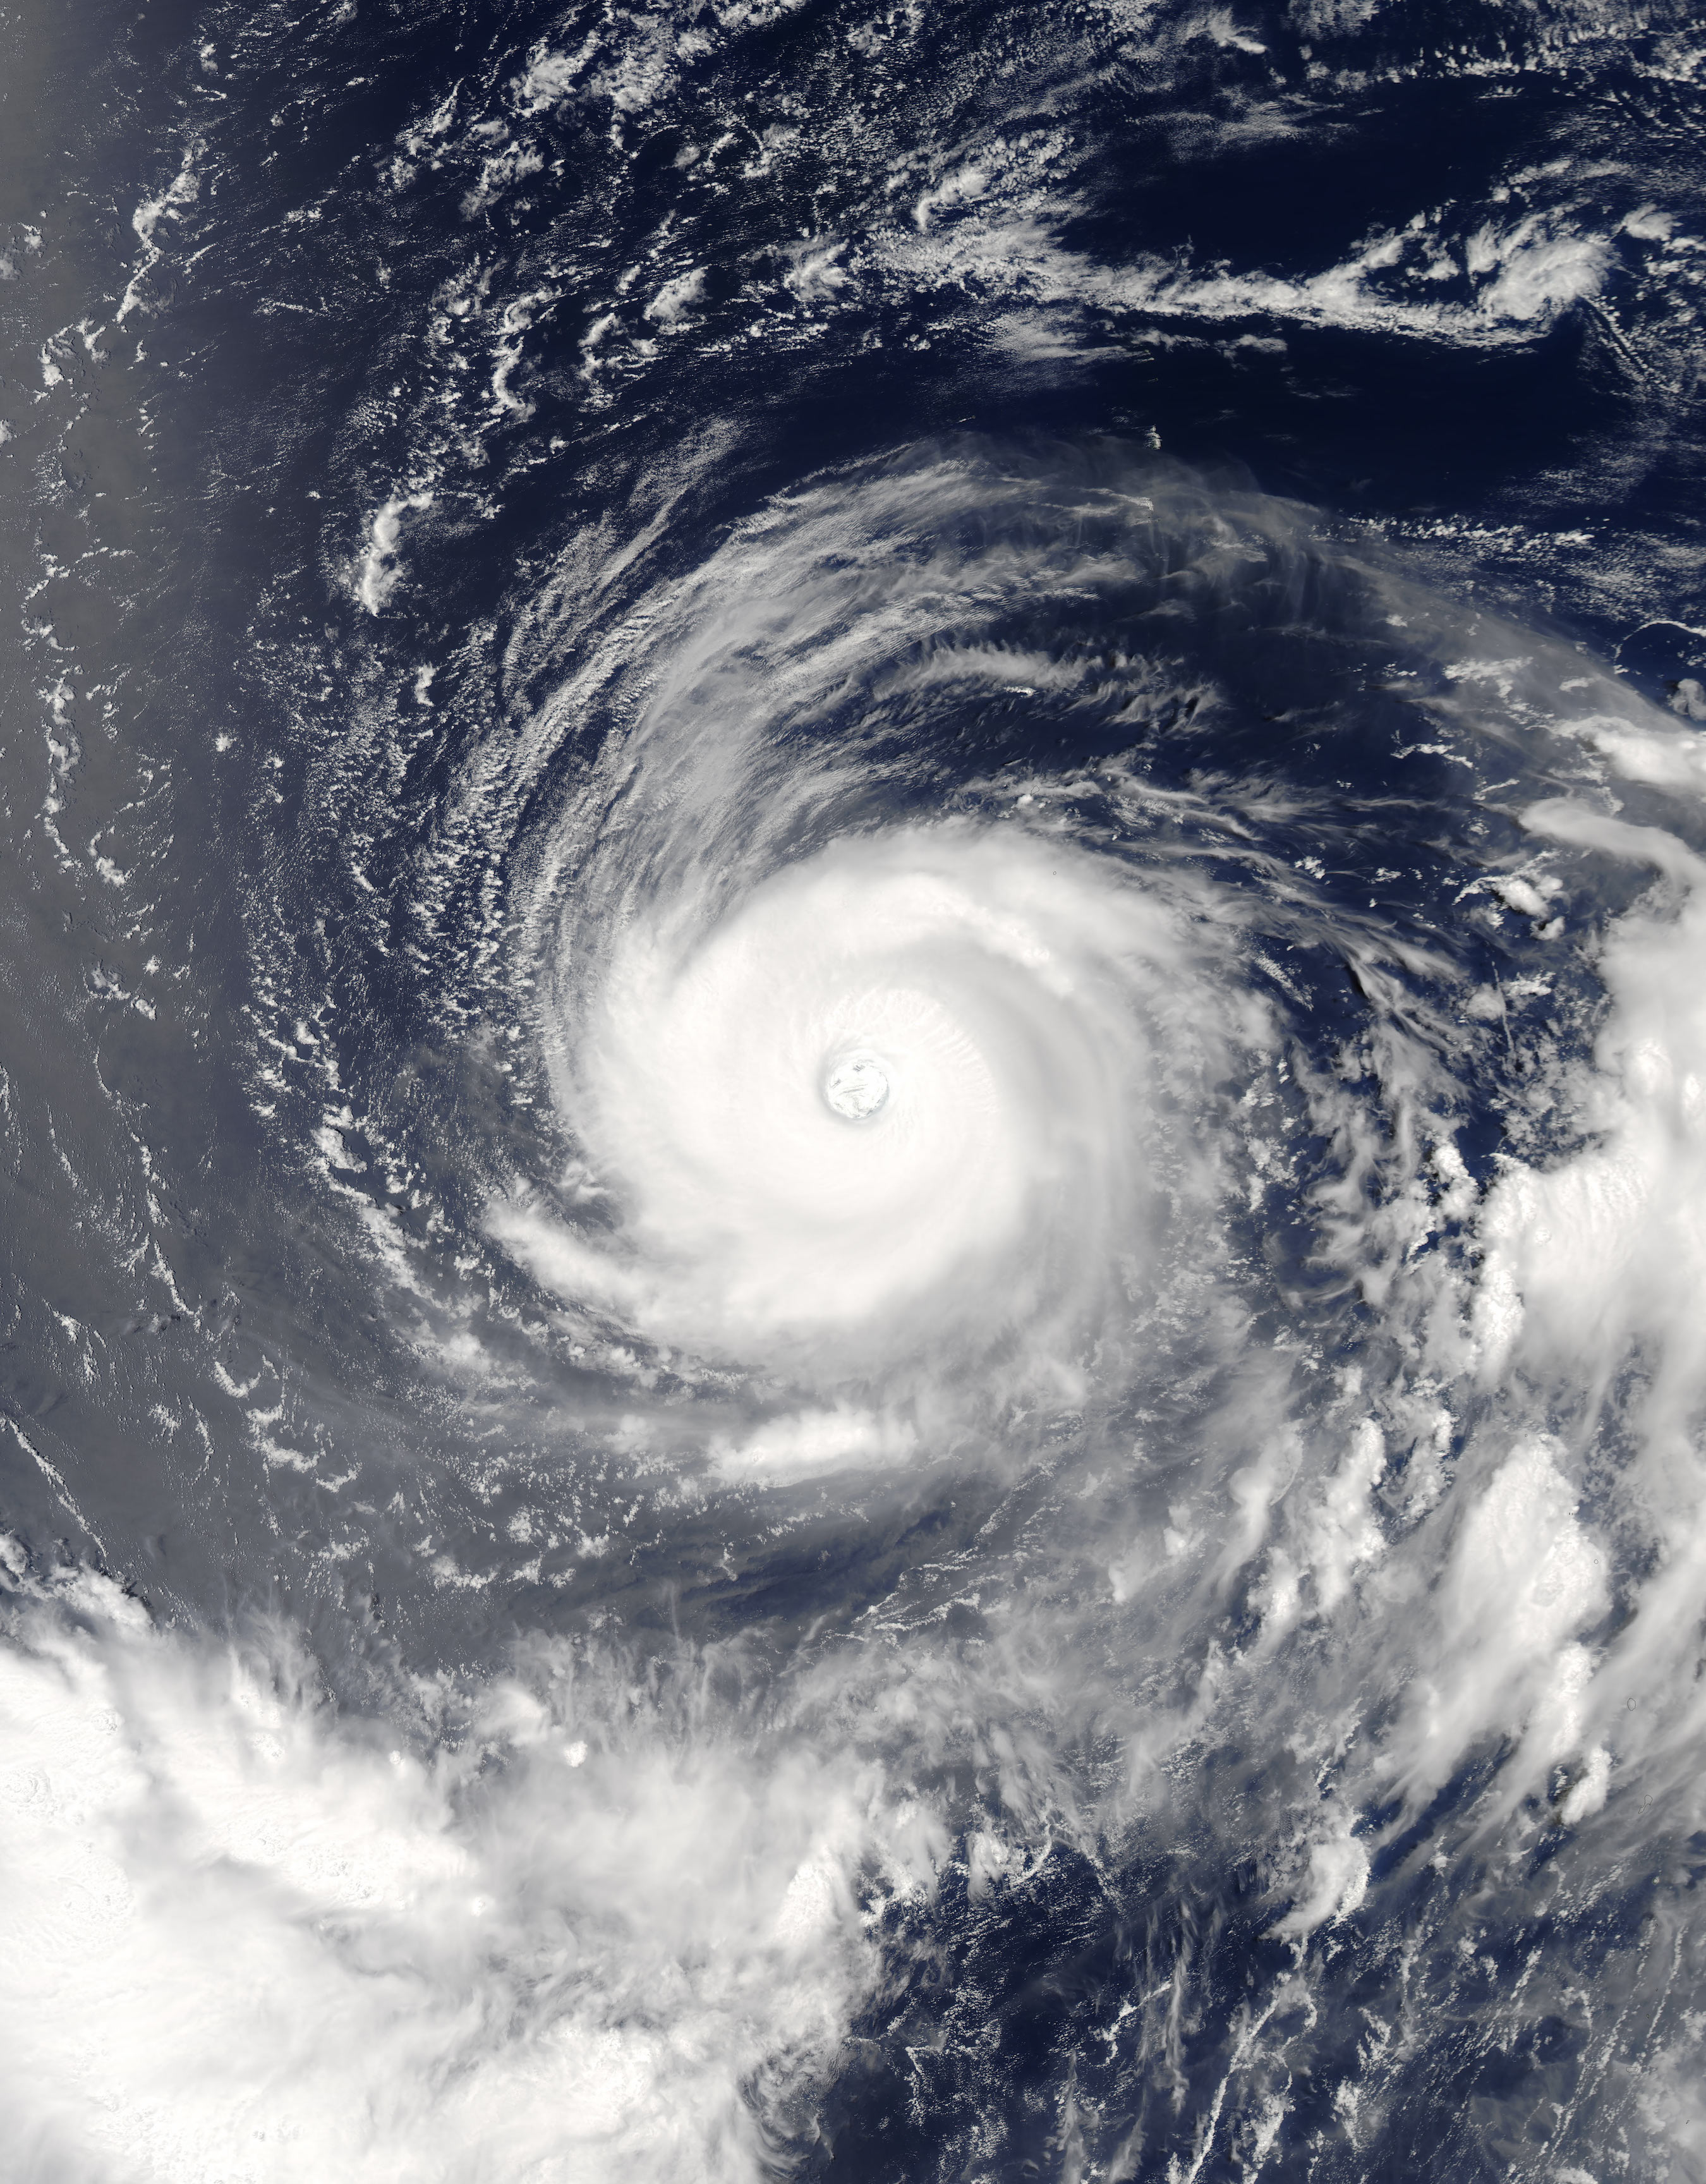 Today's Image of the Day comes thanks to the NASA Earth Observatory and features a look at Super Typhoon Noru in the Pacific Ocean just south of Japan.